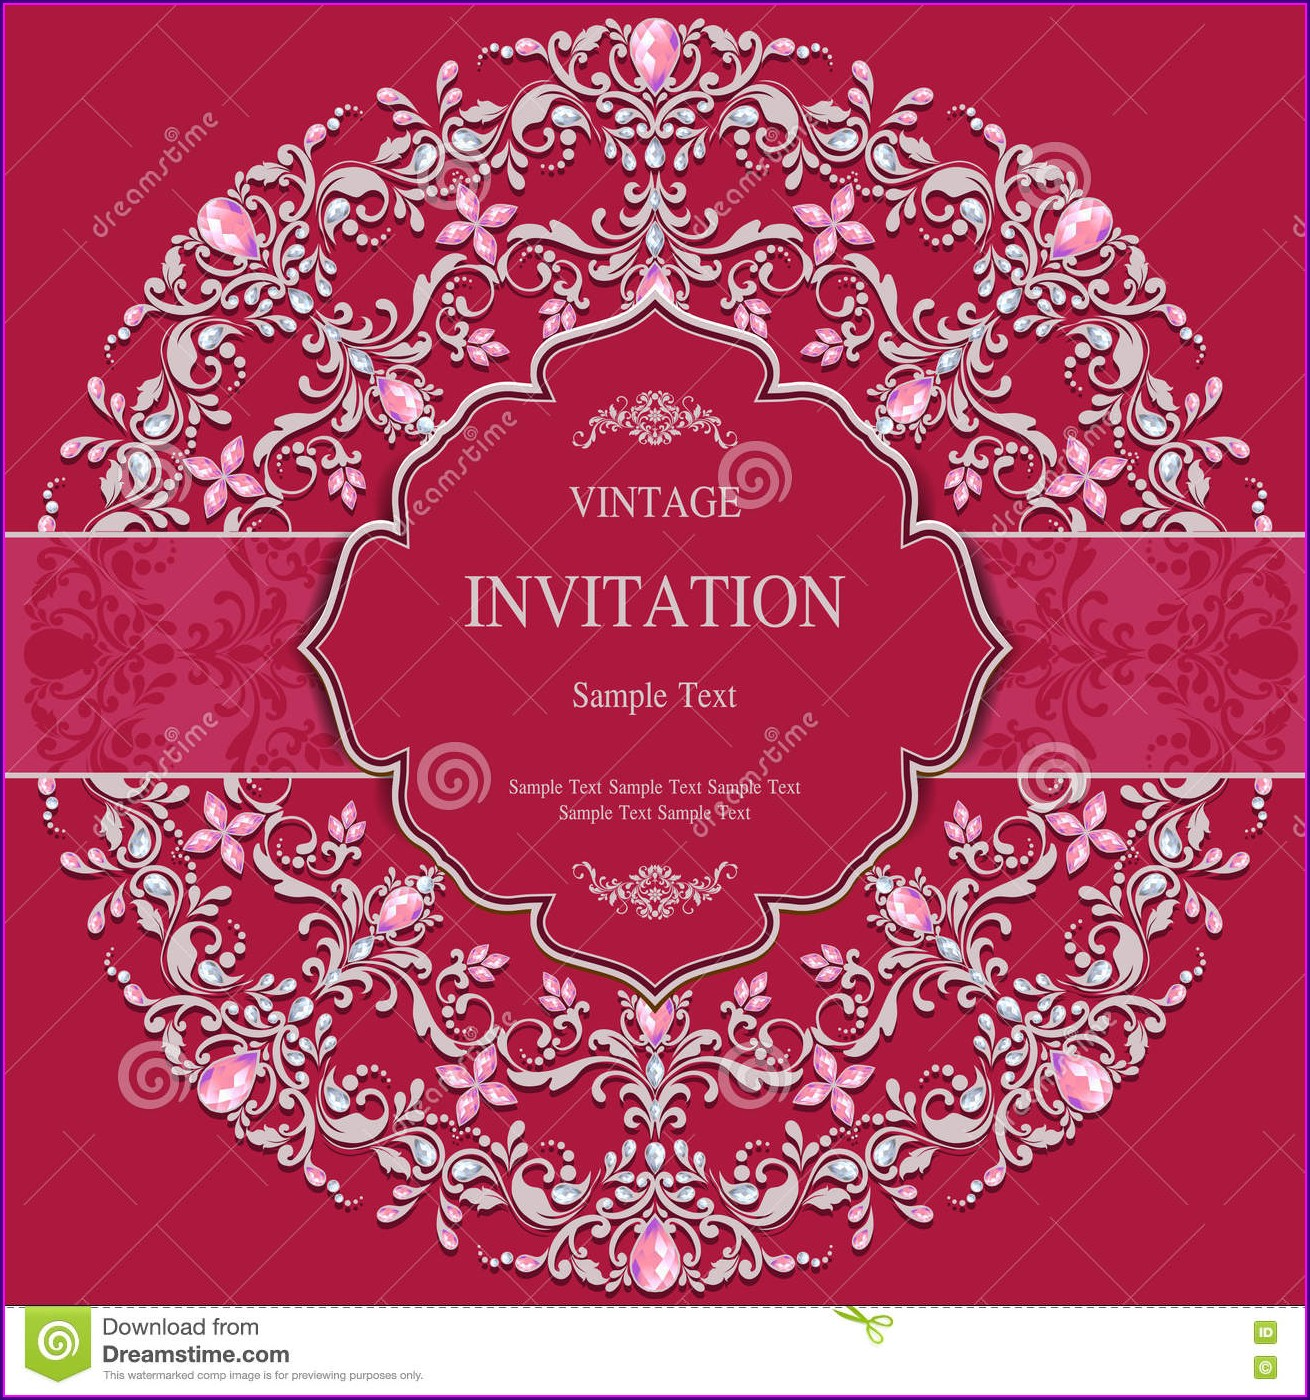 Invitation Cards Background Designs Free Download